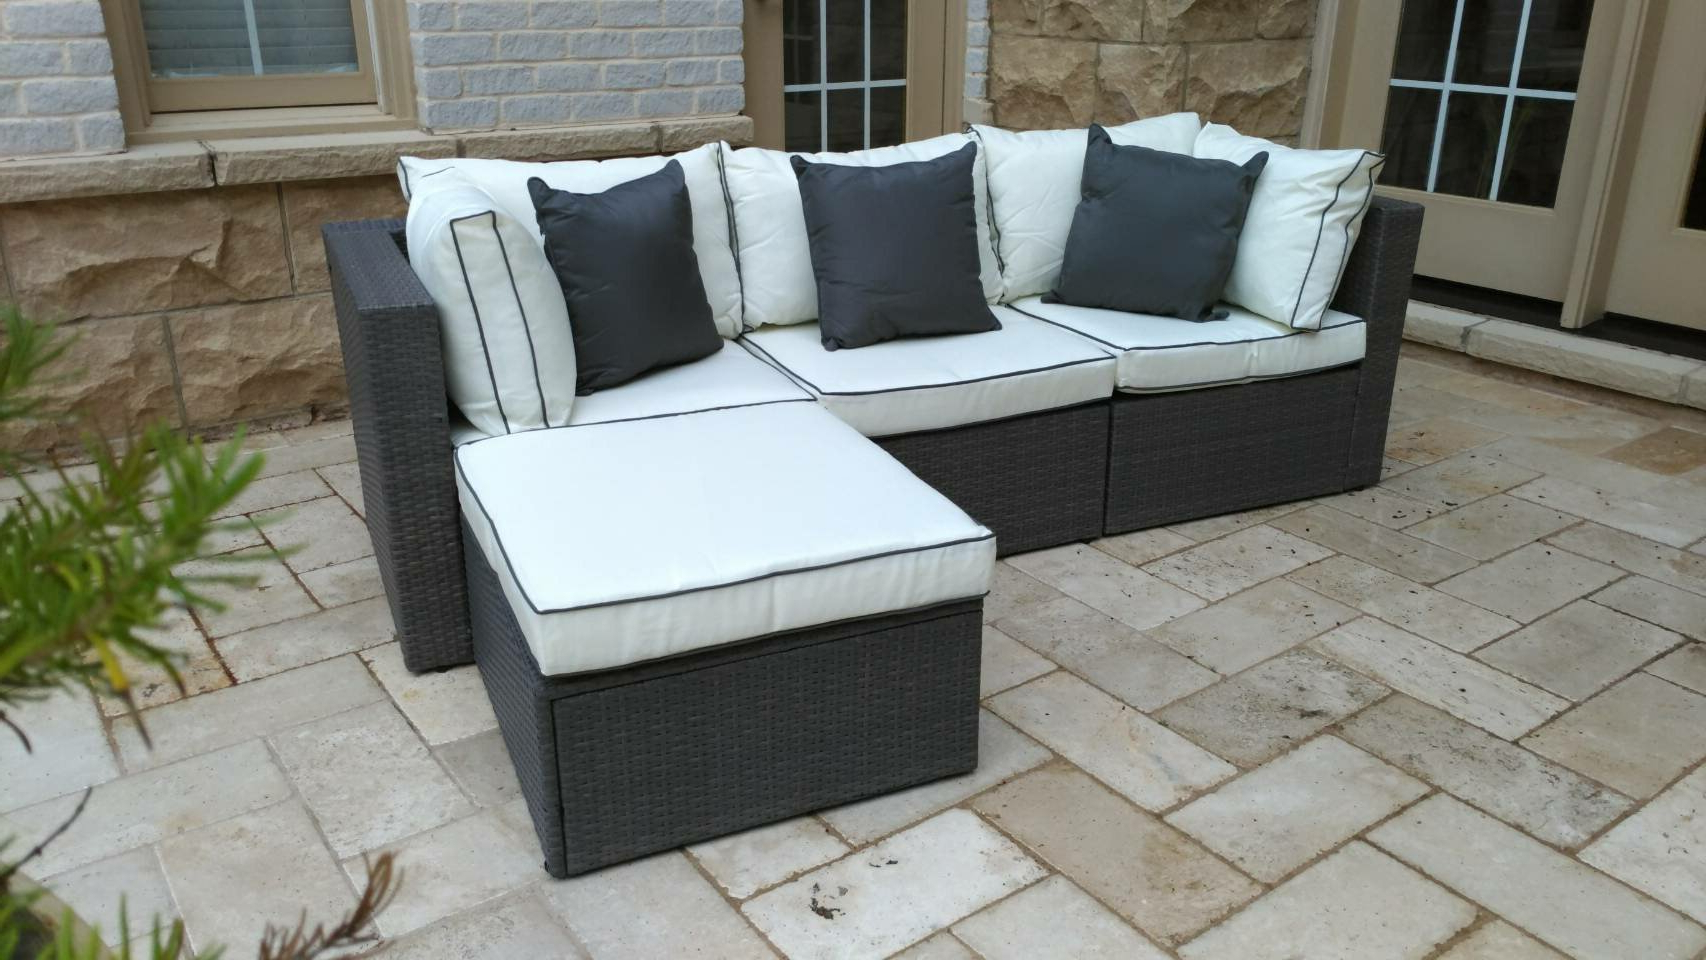 Most Recently Released Three Posts Burruss Patio Sectional With Cushions Inside Brecht Patio Sectionals With Cushions (Gallery 4 of 25)